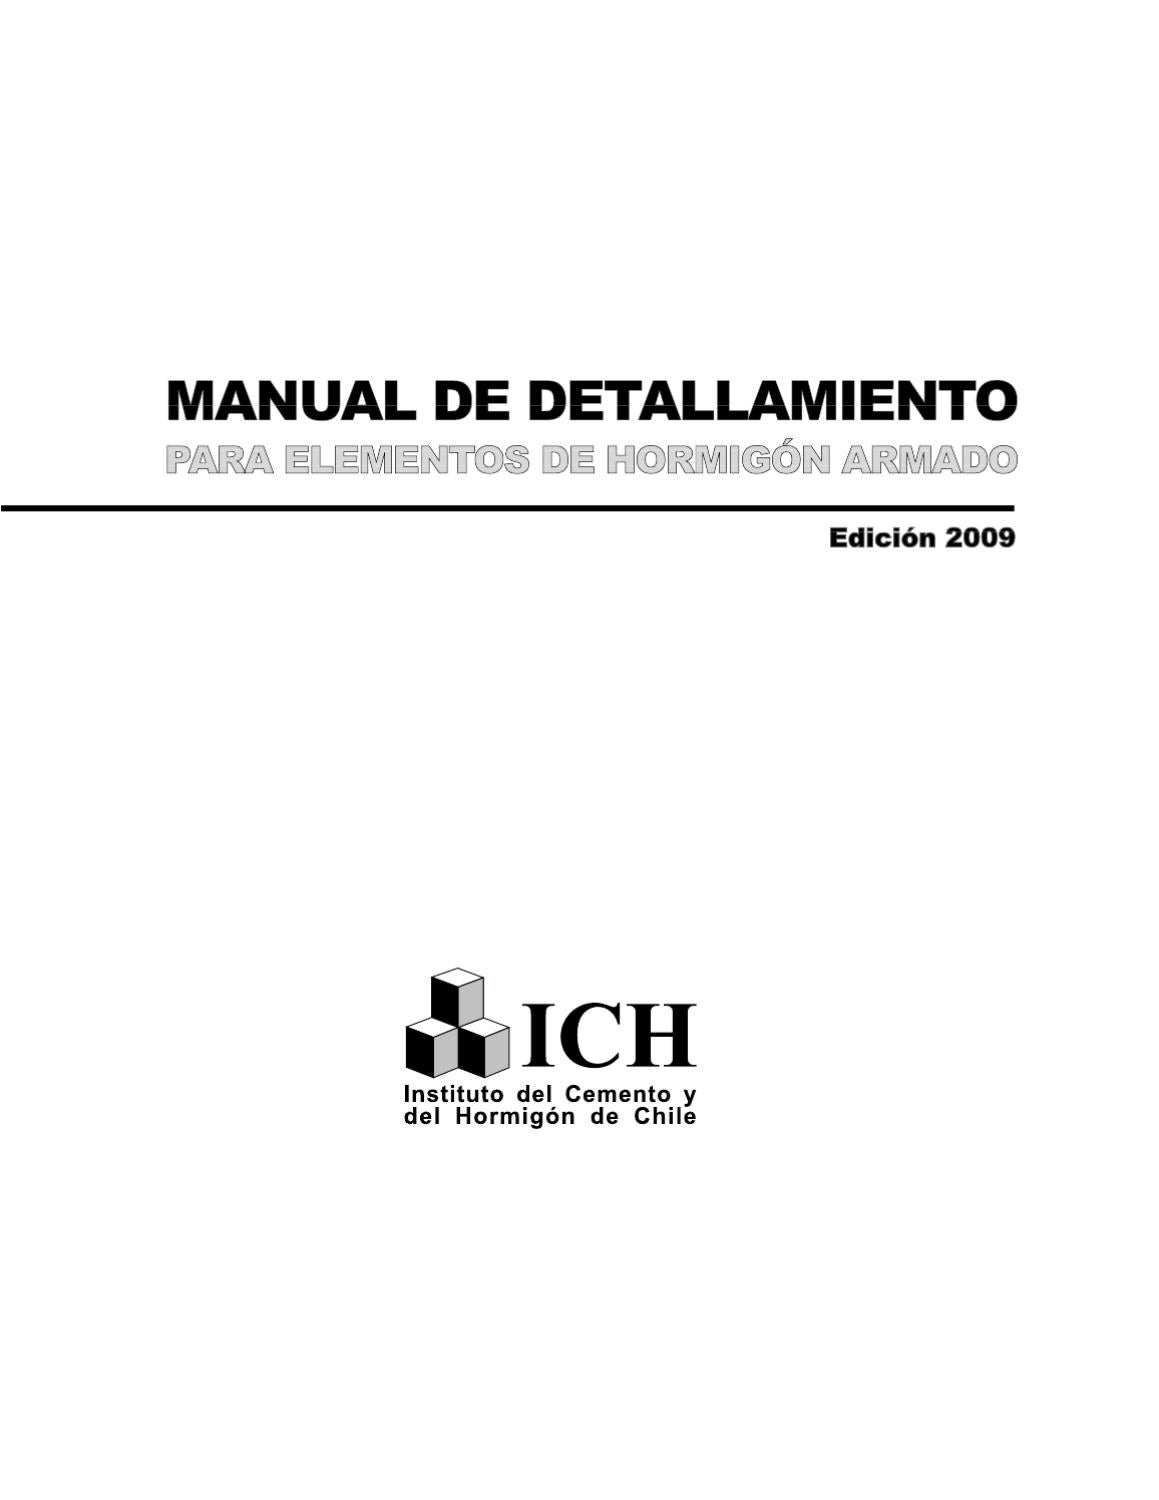 Manual detallamianto elementos hormigon armado by manuel for Hormigon impreso chile